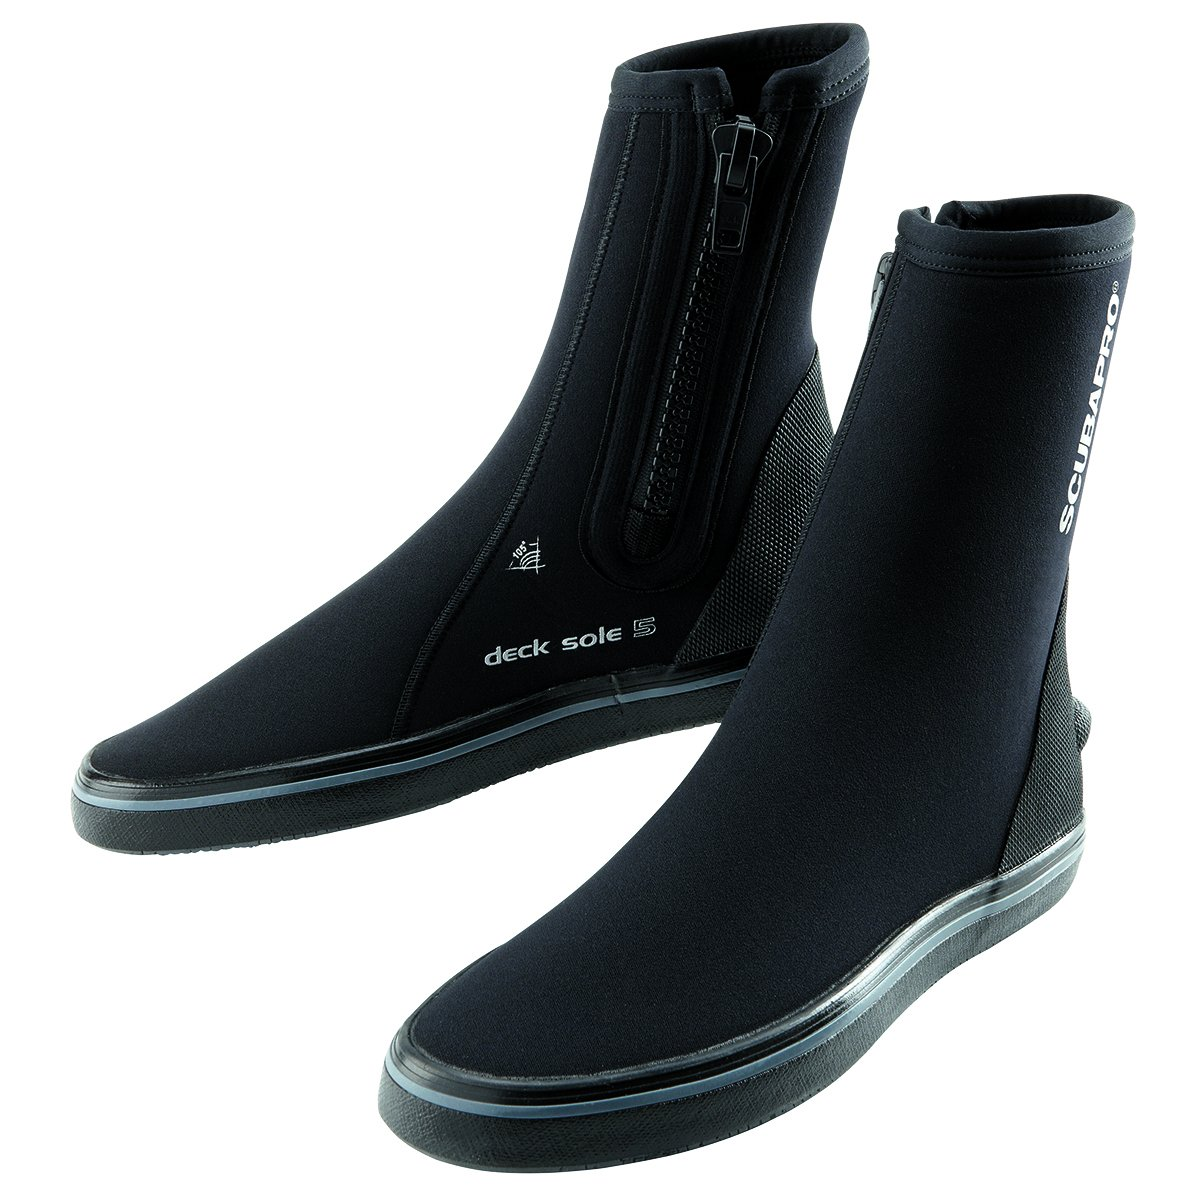 Deck Sole 5 Boot